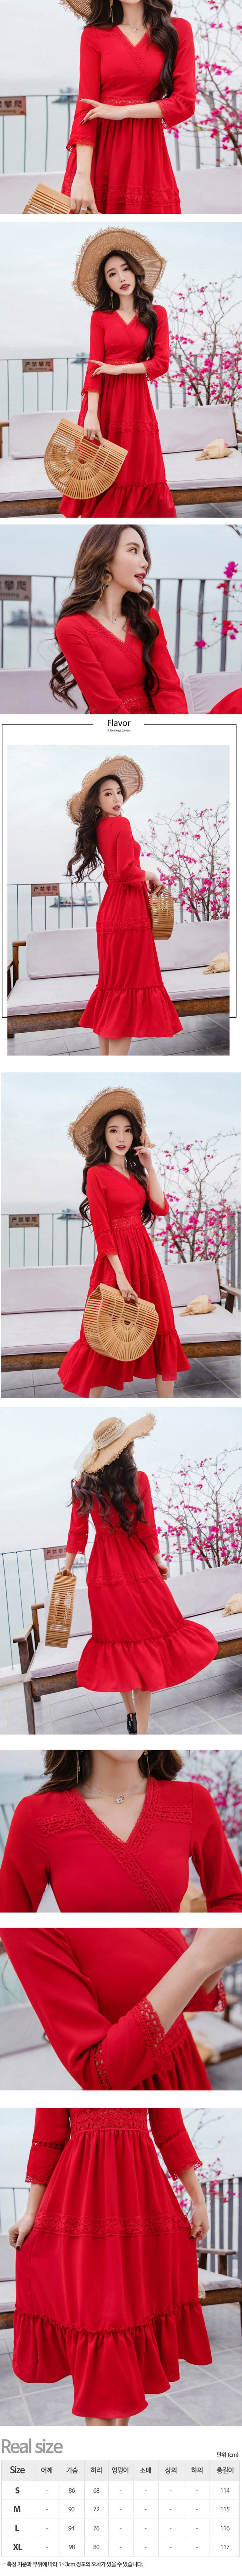 Lace Frill Red Dress